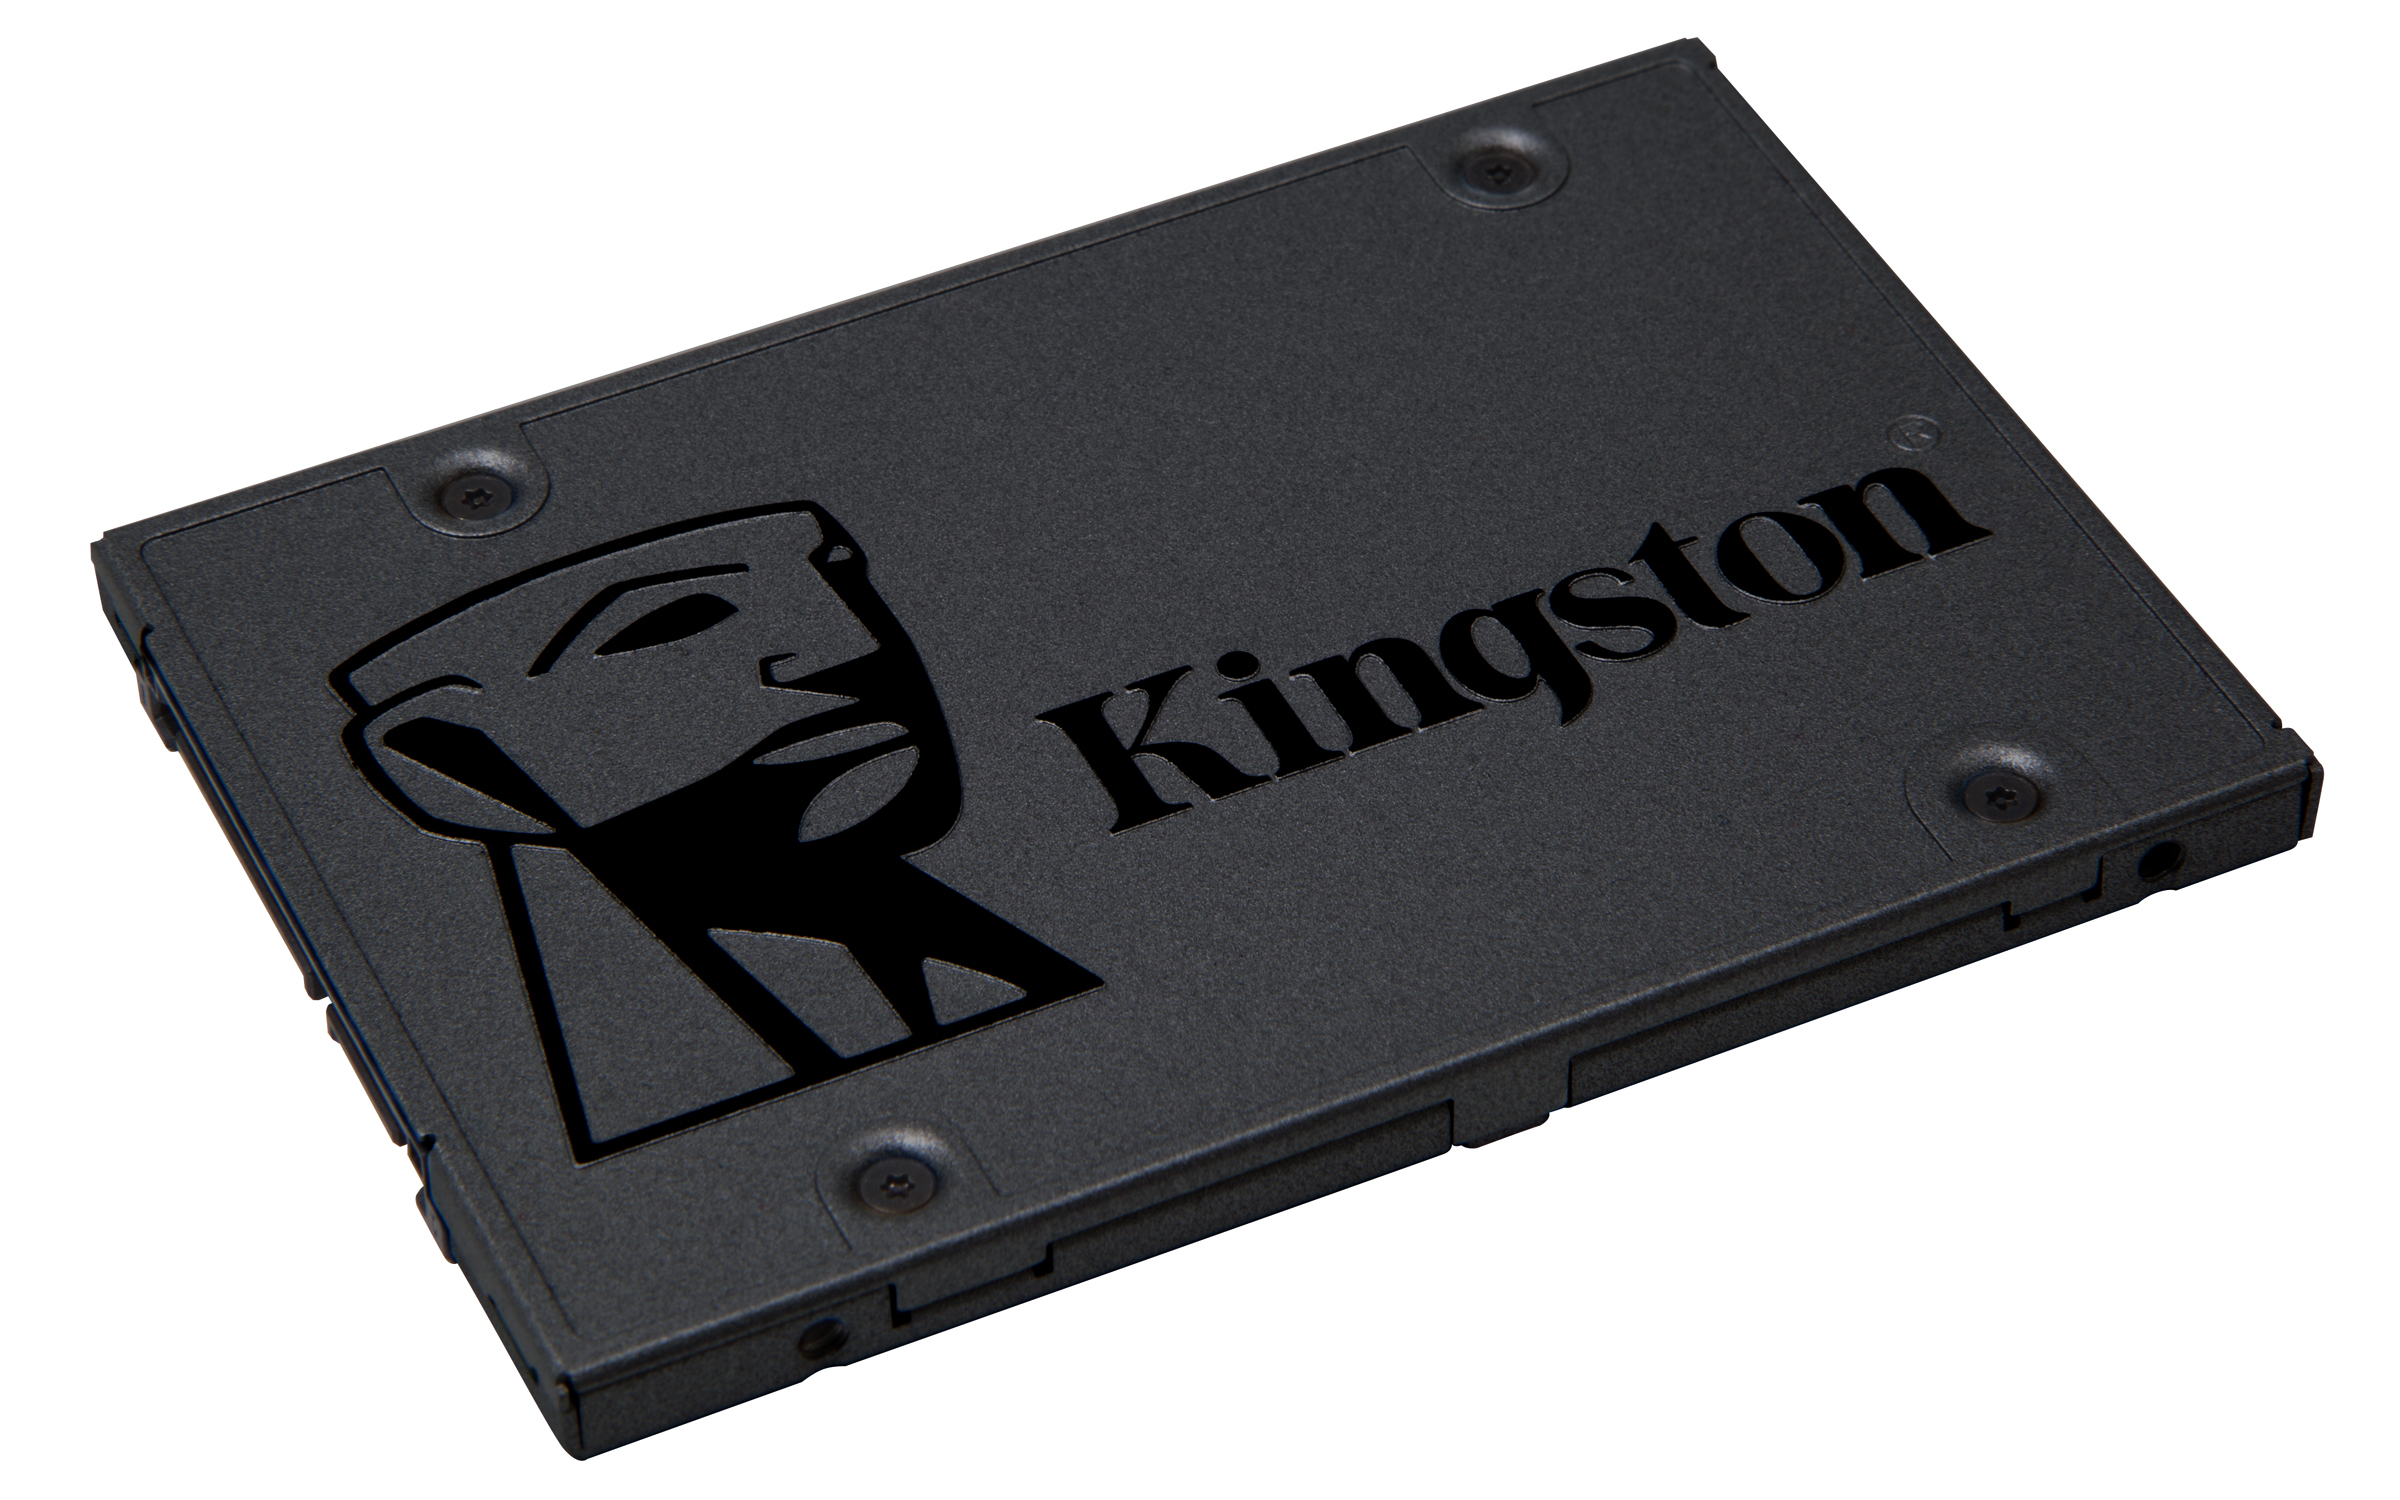 KINGSTON SSD A400 240GB 2.5